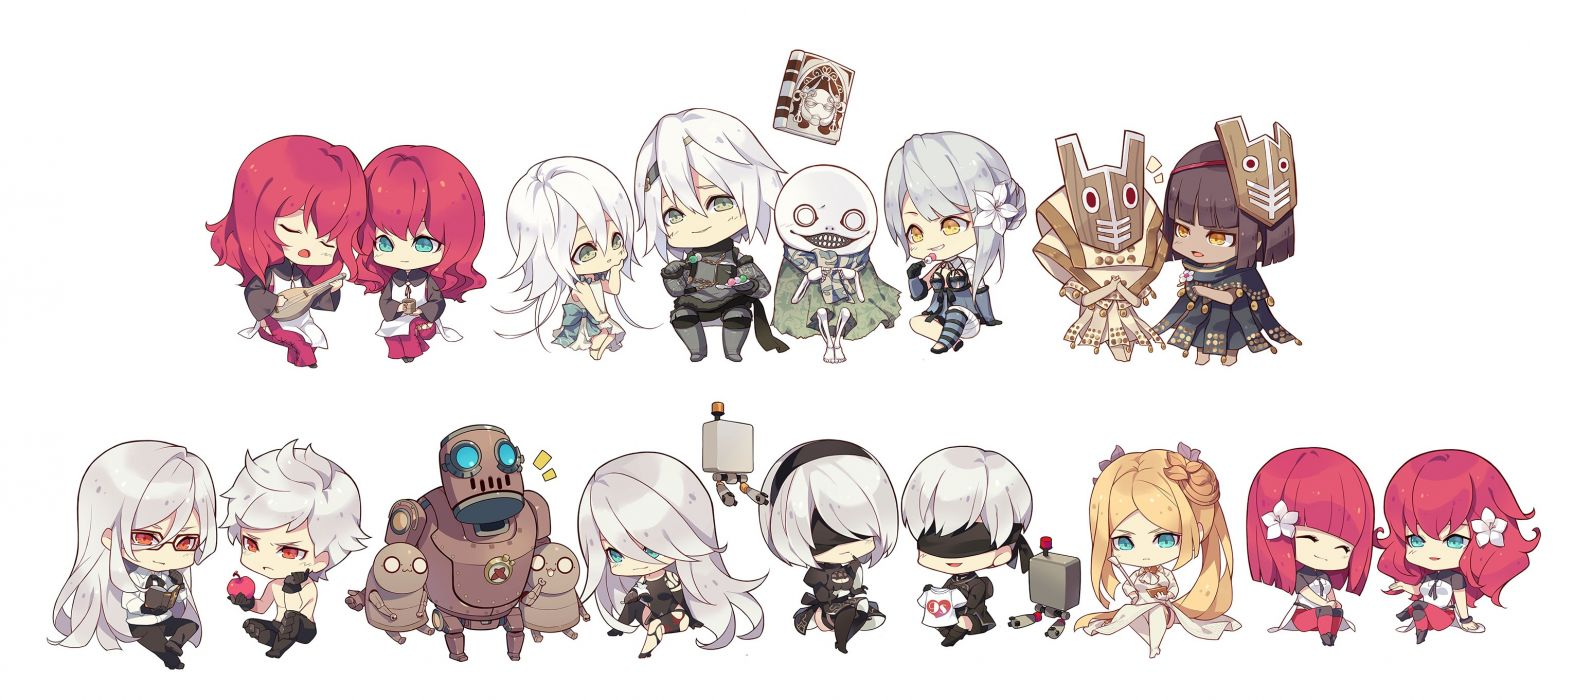 Konachan com - 240075 apple aqua eyes blindfold book chibi debol emil food fruit glasses gray hair group kaine male mask nier popol red eyes red hair robot white yonah wallpaper